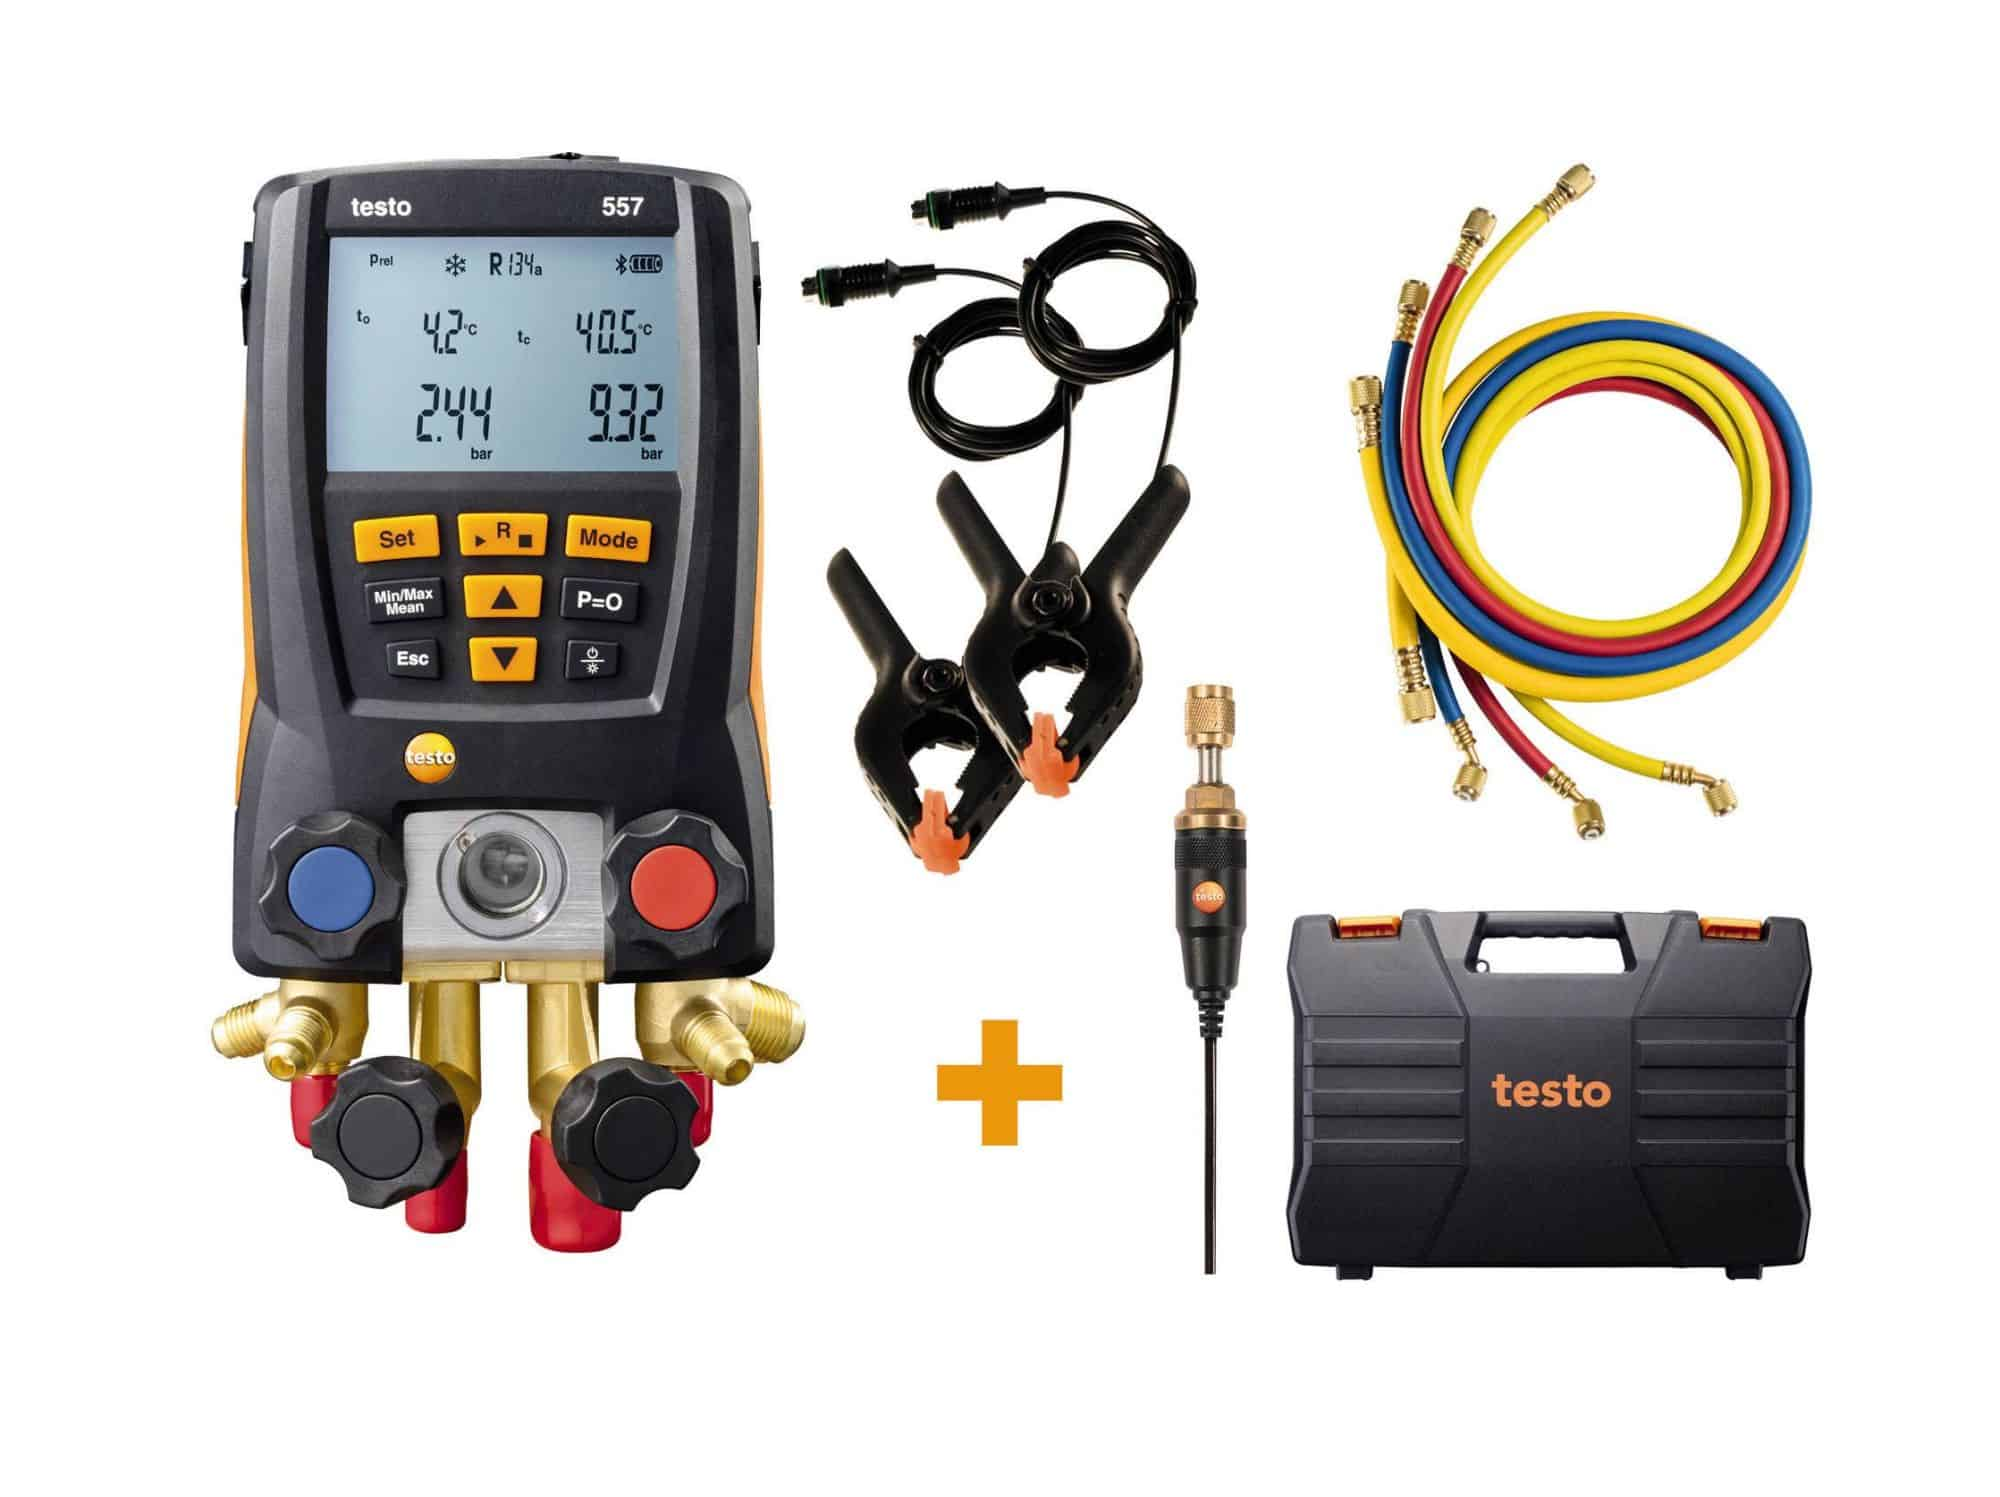 Testo_557_Digital Manifold - Digital Manifold Kit – With Bluetooth and set of 4 filling tubes